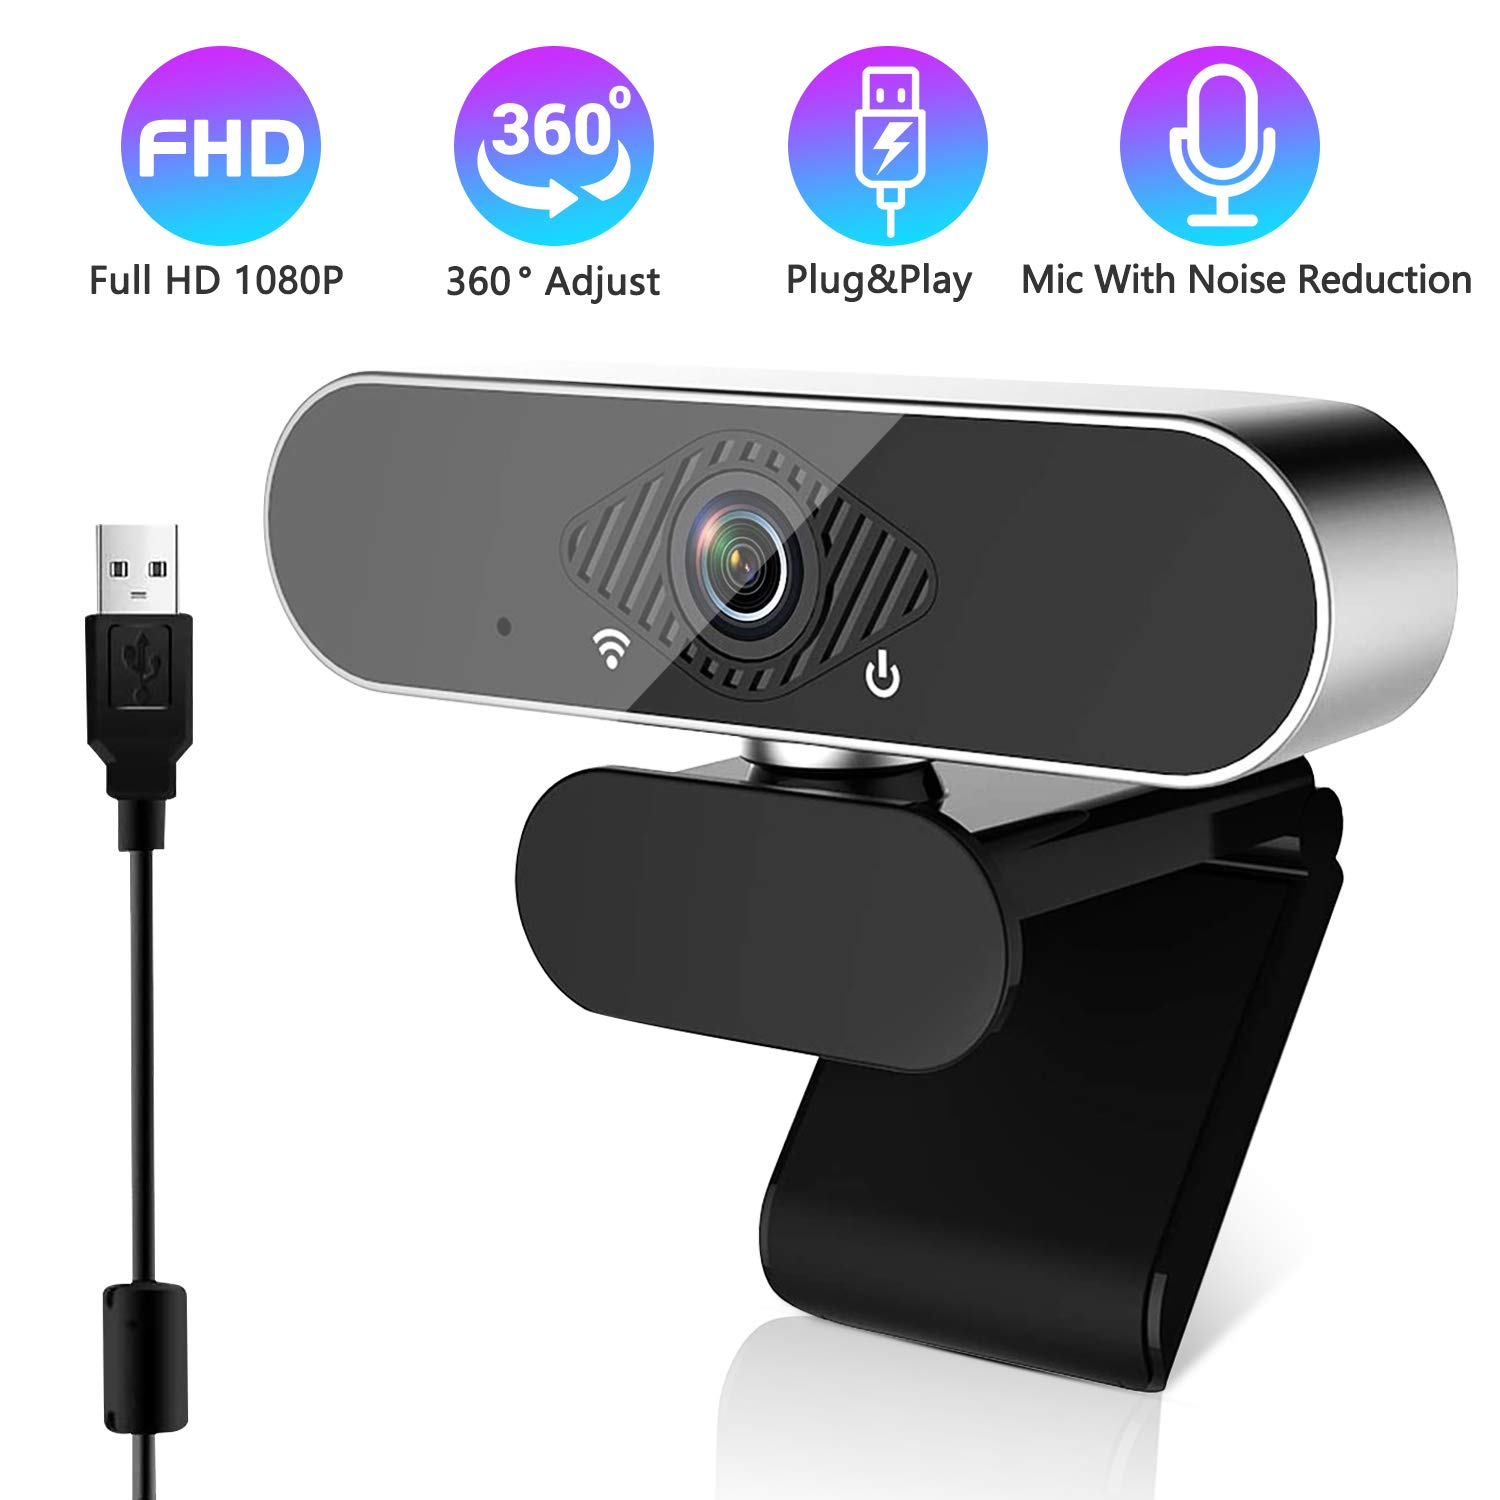 1080P Webcam with Microphone USB Webcams 360 °Rotation for Desktop Wide Angle 110 Degree Computer Cameras Webcameras for Laptop Compatible with Windows Mac Android TV Facebook